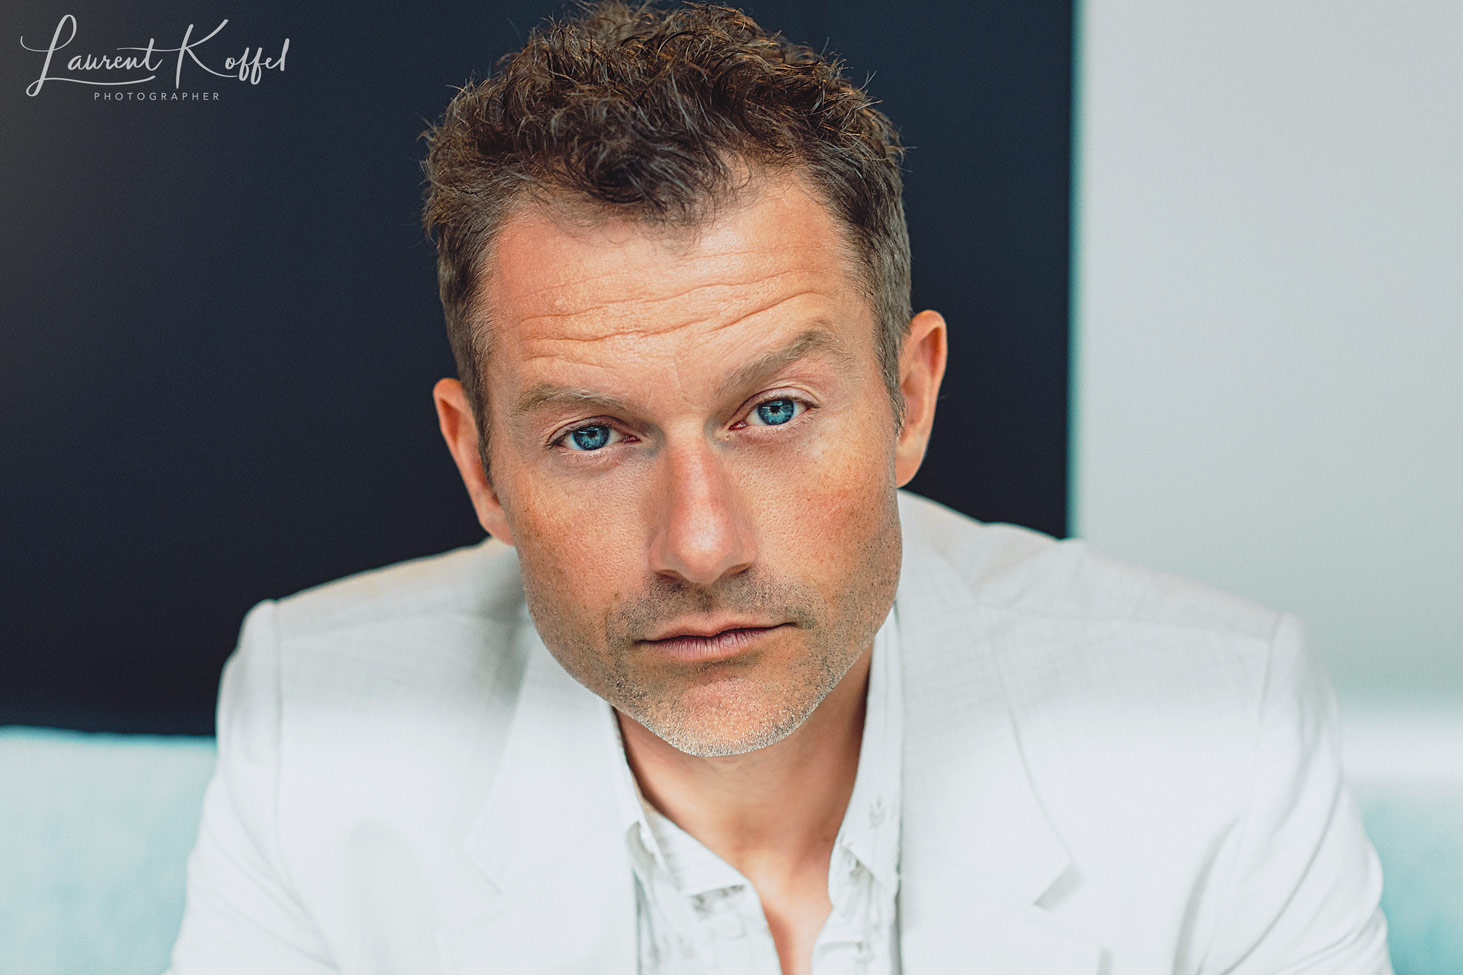 JAMES BADGE DALE Photo by Laurent Koffel